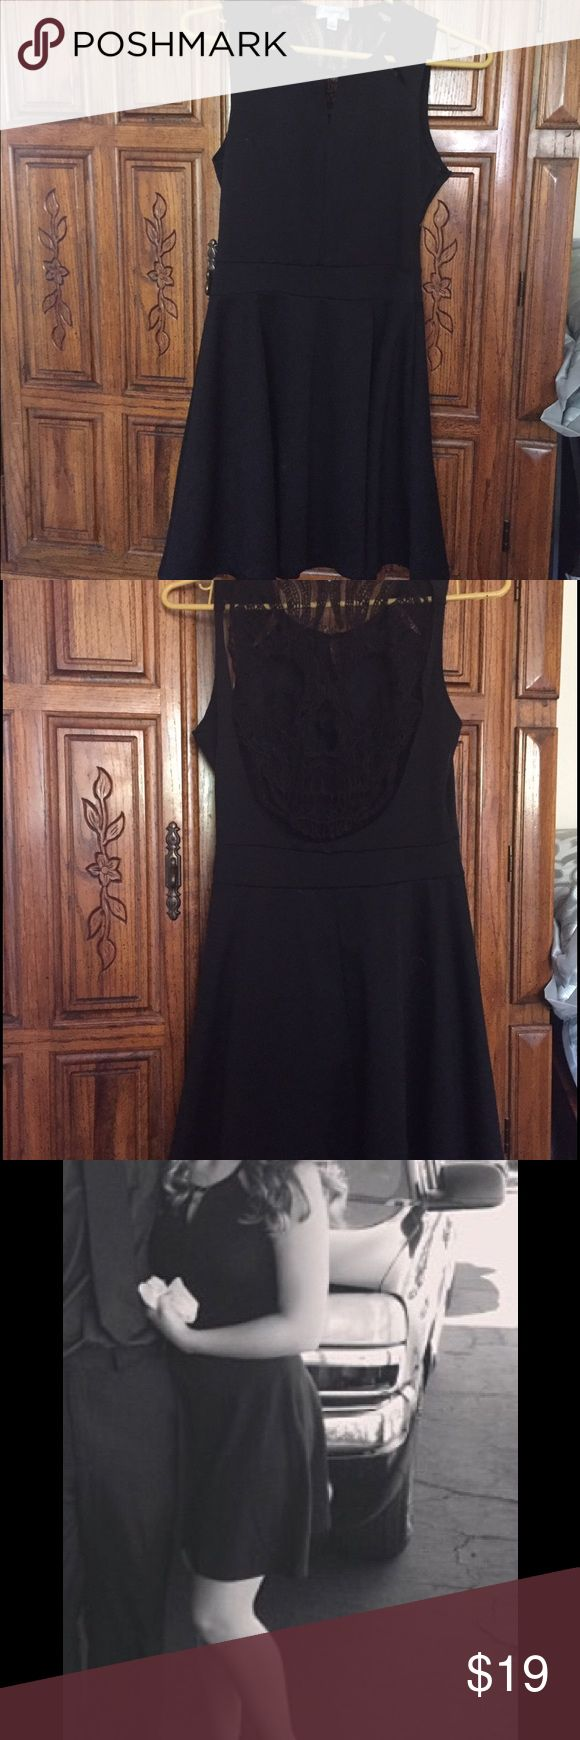 Closet triangle cut out back dress - Little Black Dress Fitting At The Waist Then Flows Out Top Has Triangle Cut